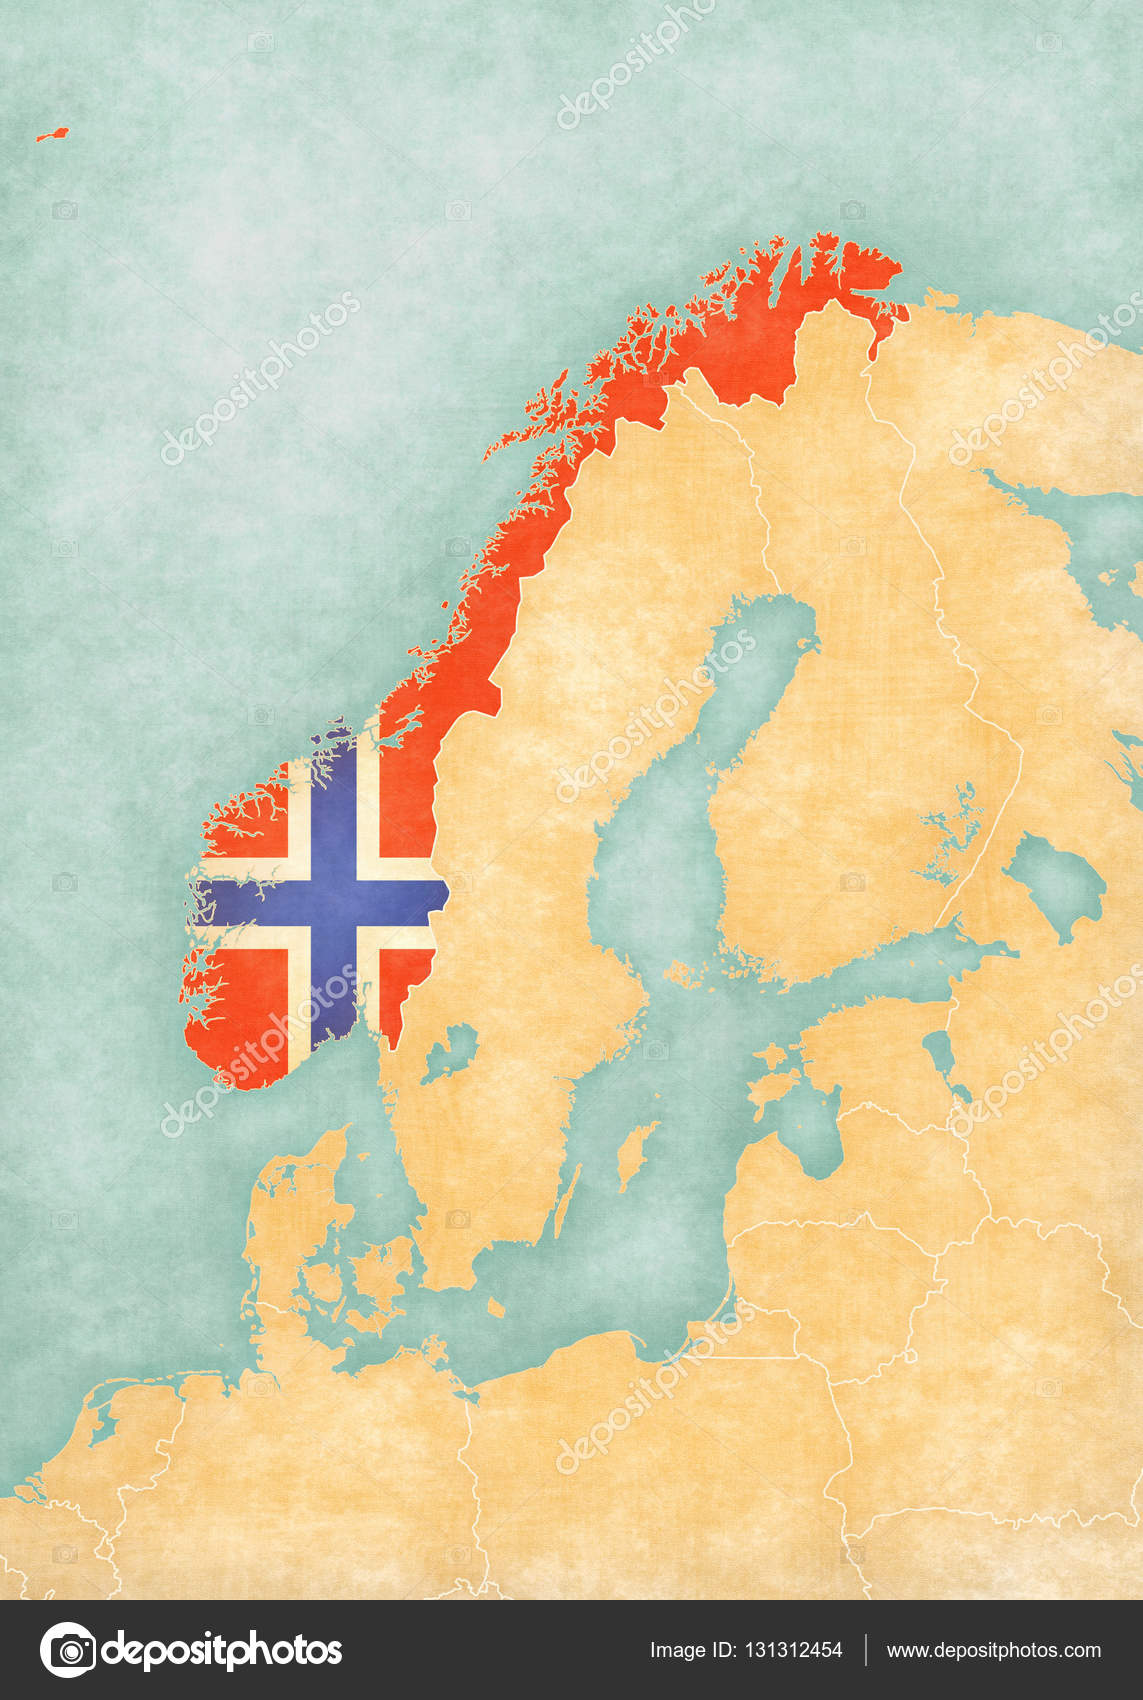 Map of Scandinavia - Norway — Stock Photo © Tindo #131312454 In Ad Map Of Scandinavia on map of sweden, map of holland, map of norway, map of ireland, map of benelux, map of british isles, map of iceland, map of england, map of canada, map of austria, map of australia, map of germany, map of georgia, map of africa, map of pakistan, map of the pyrenees, map of denmark, map of netherlands,